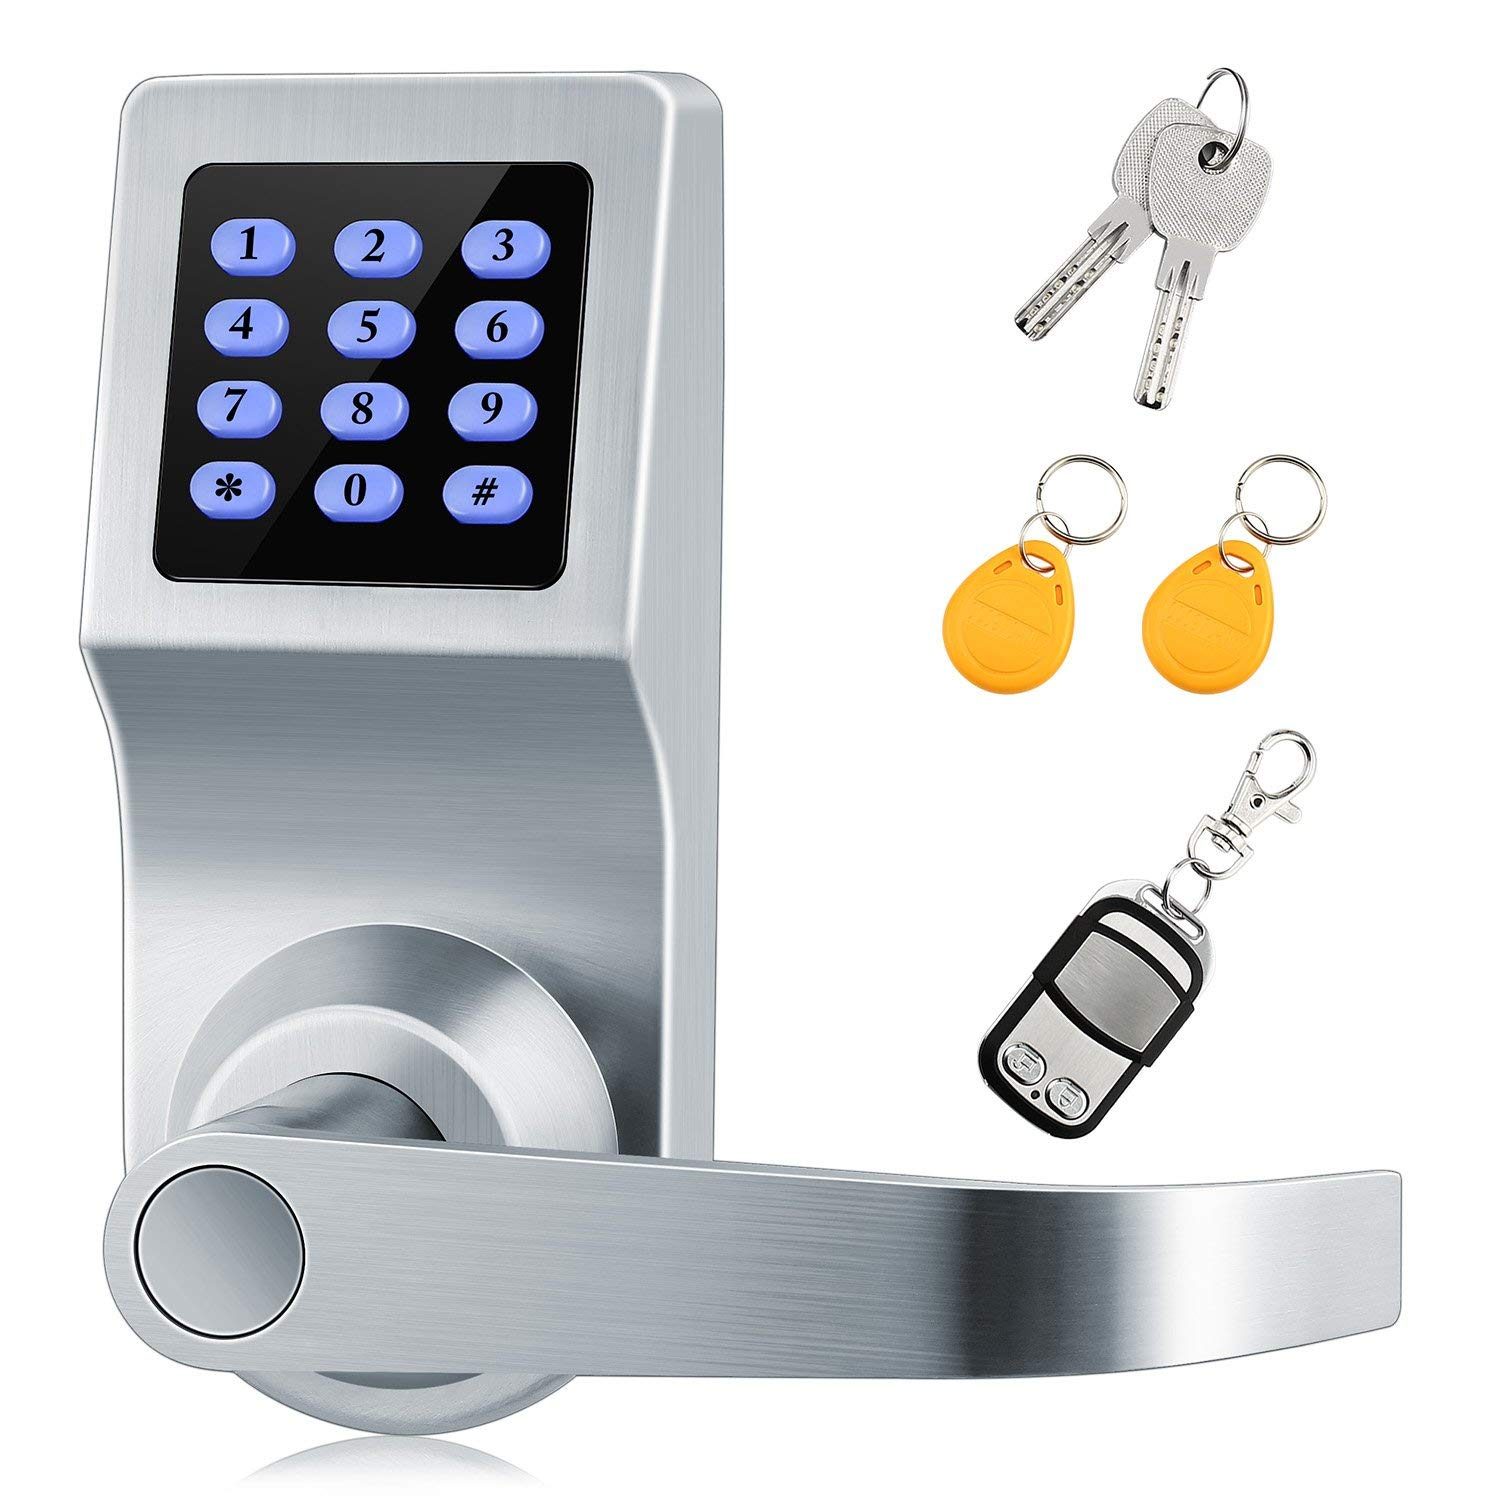 Smart Door Lock,XINDA Electronic Door Lock Featuring SmartCode and Adjustable Hand,Digital Lock Including Remote Control,Card and Metal Key.Perfect for Office,Home,Hotel and Apartment(Satin Nickel) by XINDA (Image #1)